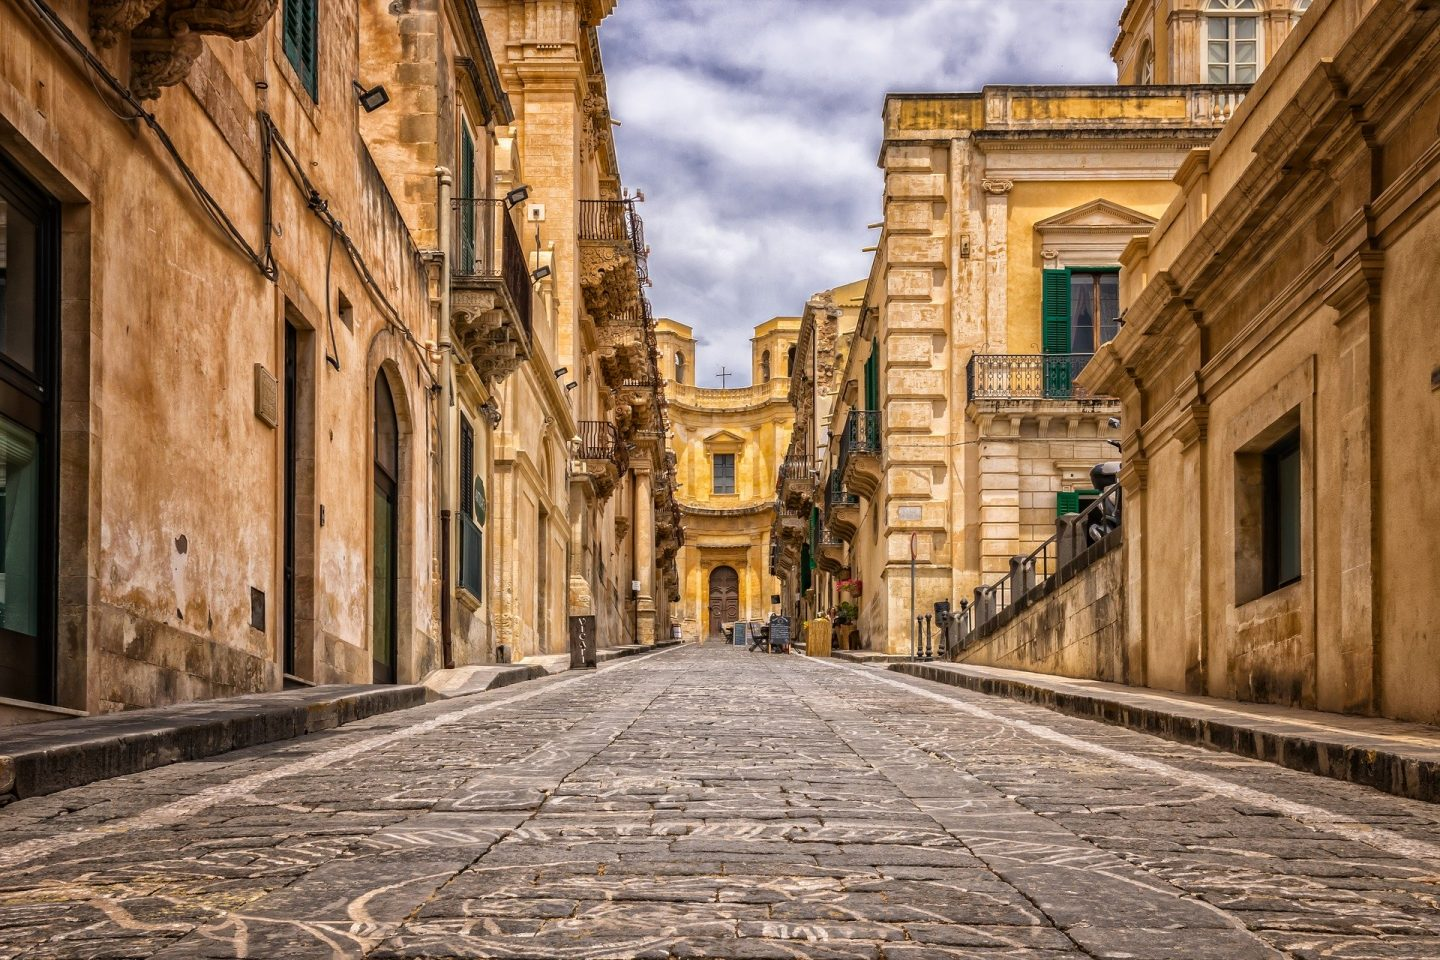 SICILY: A PECULIAR MIX OF CULTURES